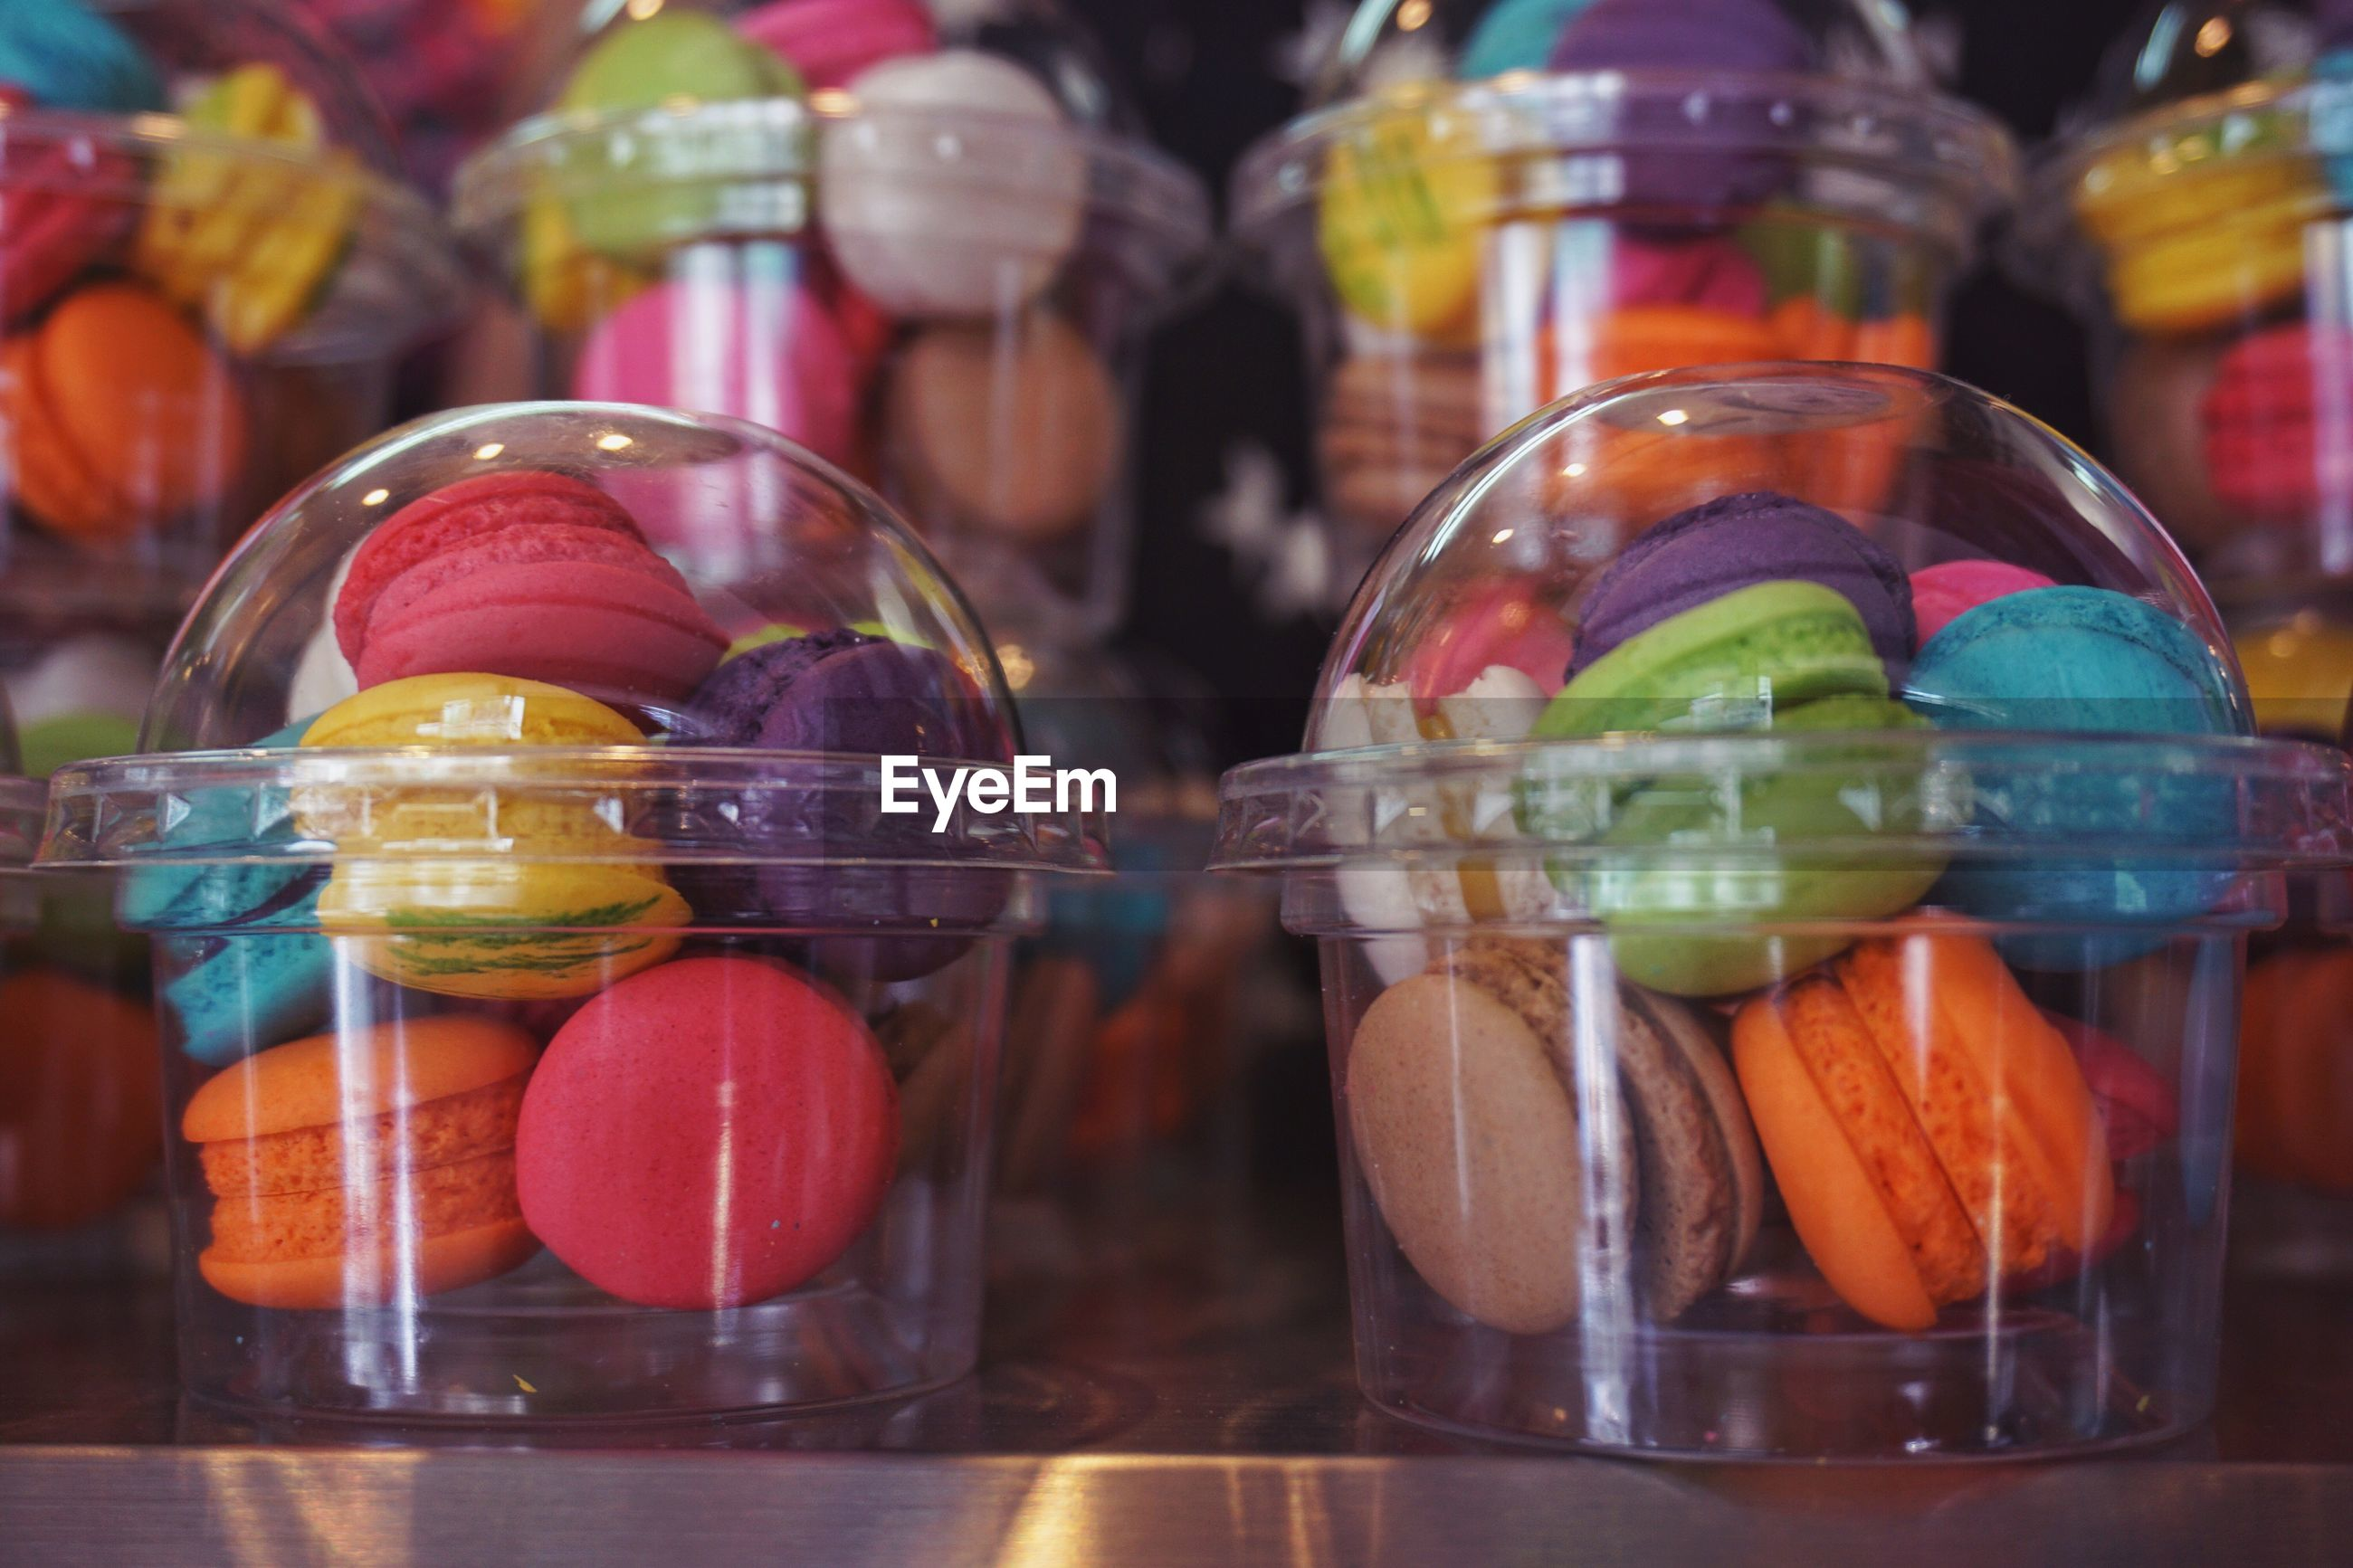 CLOSE-UP OF FRUITS IN JAR WITH CANDIES